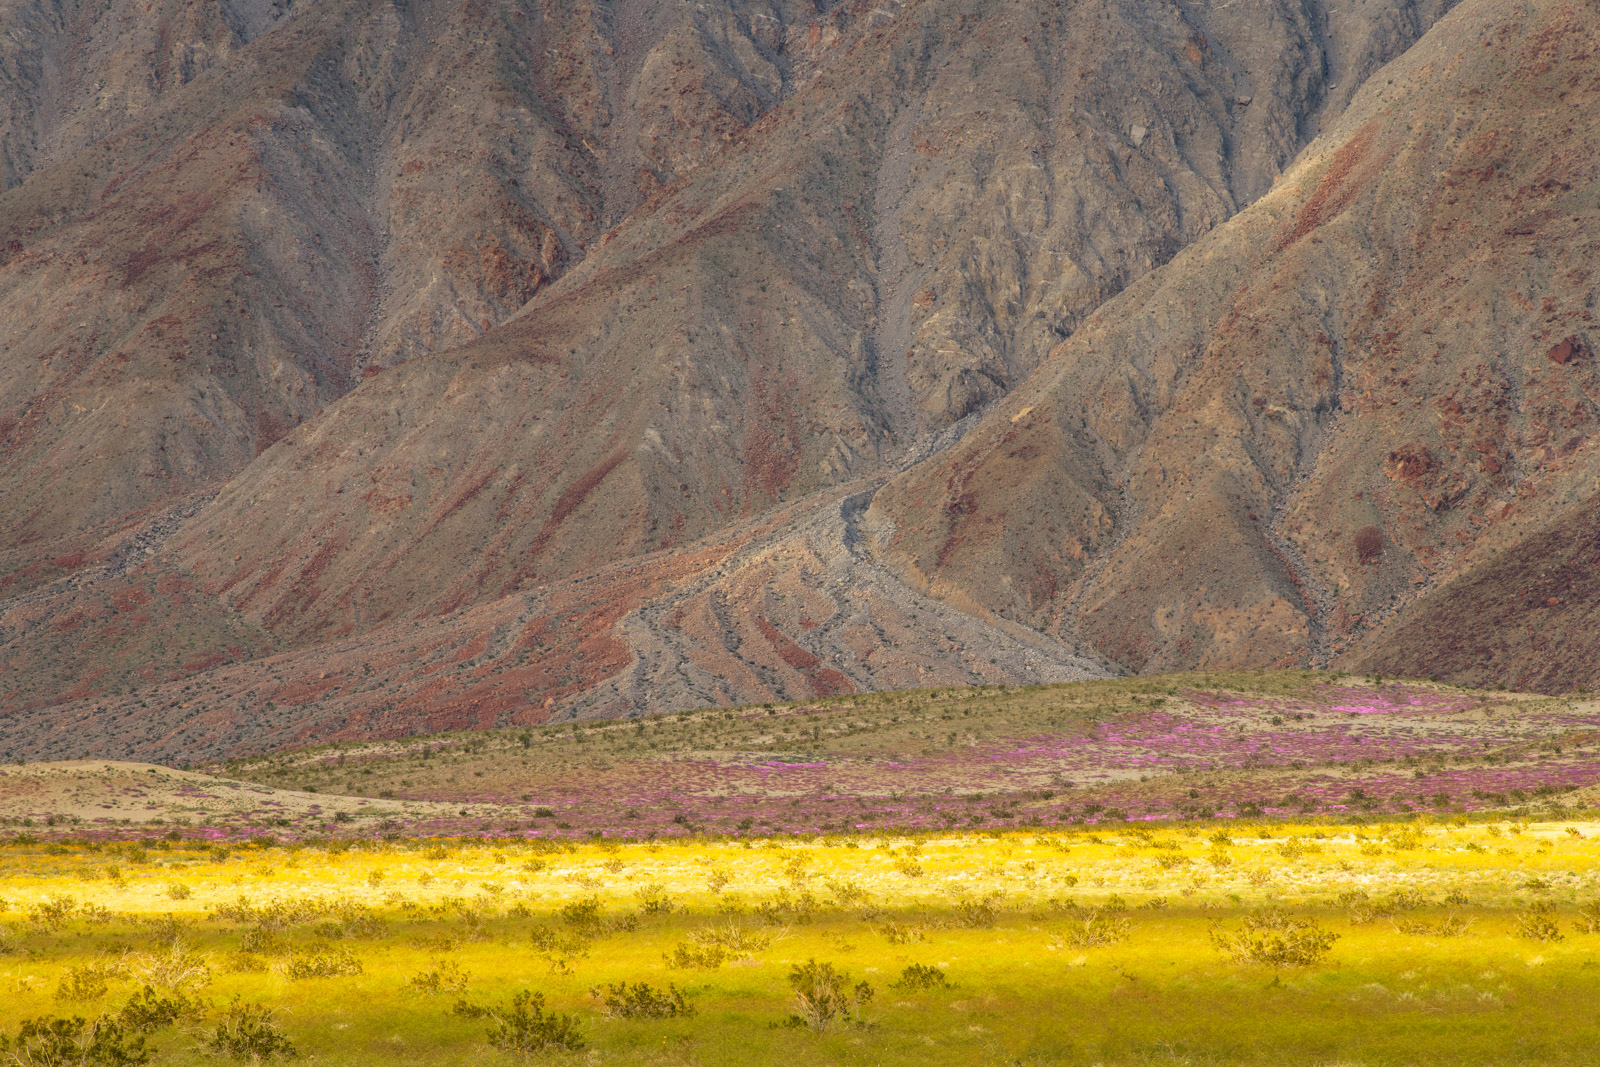 Siper bloom with rugged desert hills in Anza Borrego Desert State Park.